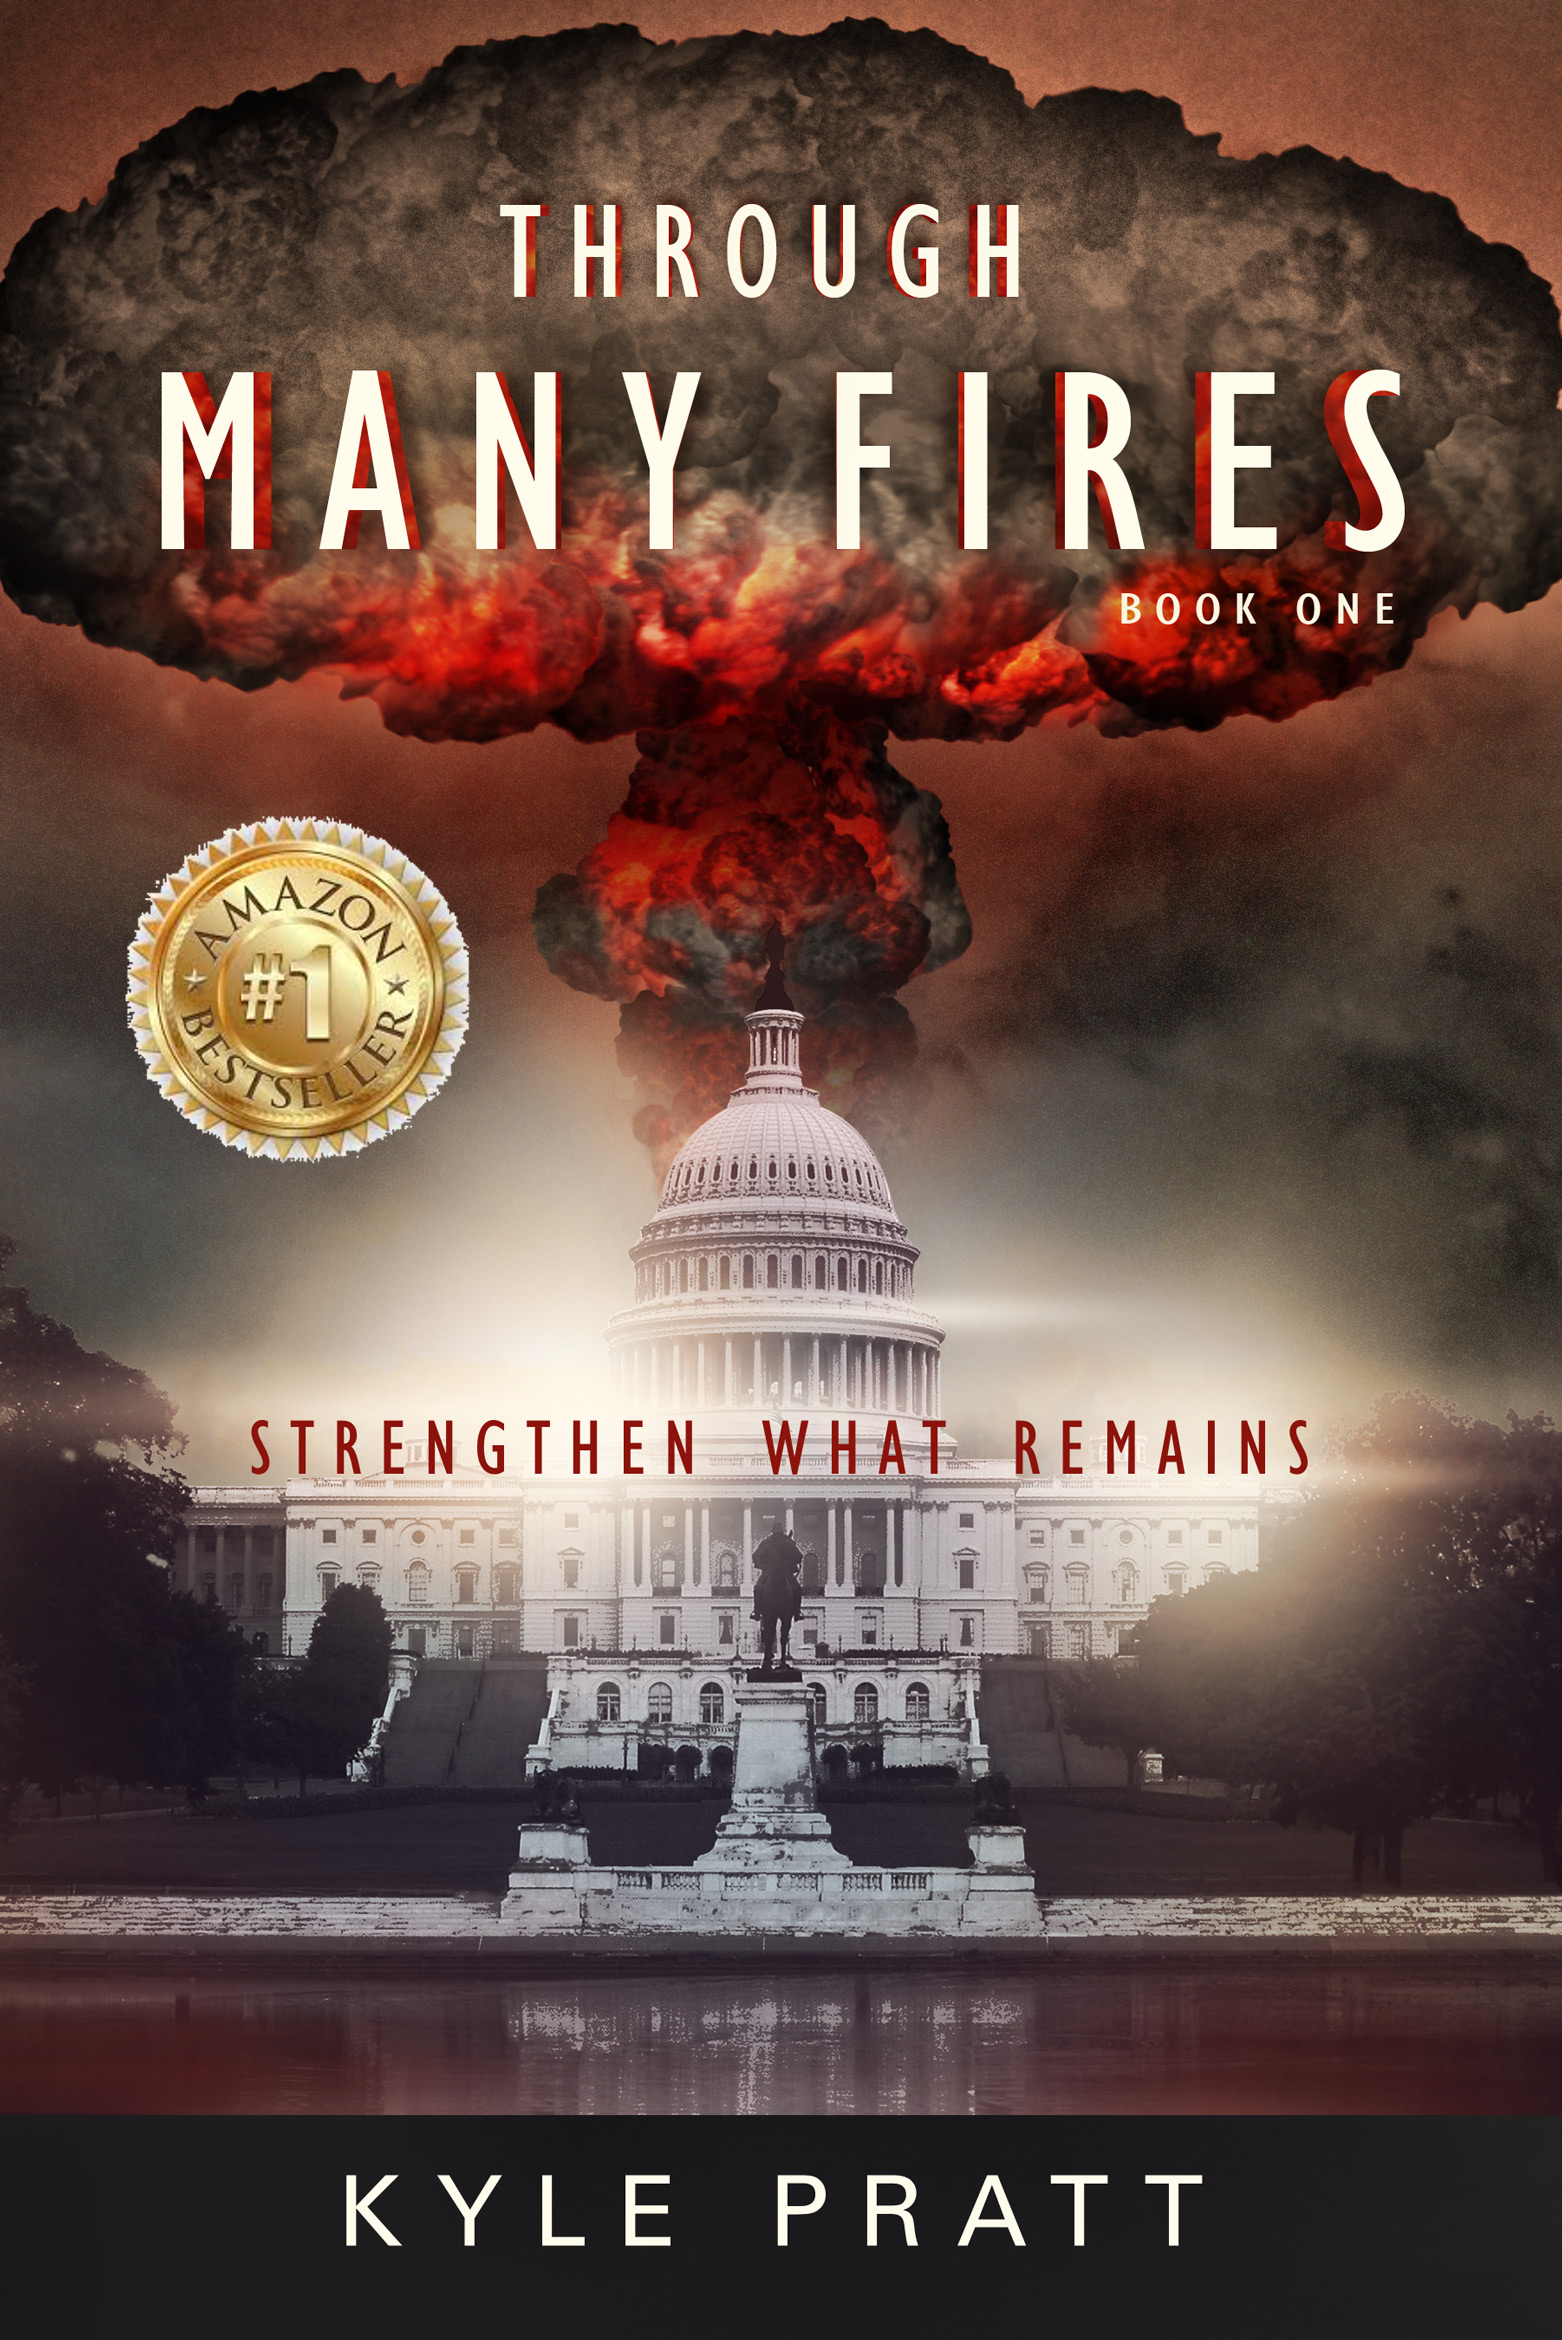 Through Many Fires    Book one in the Strengthen What Remains series.    Amazon number one bestseller   Terrorists smuggle a nuclear bomb into Washington D.C. and detonate it during the State of the Union Address. Caden Westmore is in nearby Bethesda and watches as the mushroom cloud grows over the capital. The next day, as Caden drives away from the still burning city, he learns another city has been destroyed and then another. Panic ensues and society unravels.